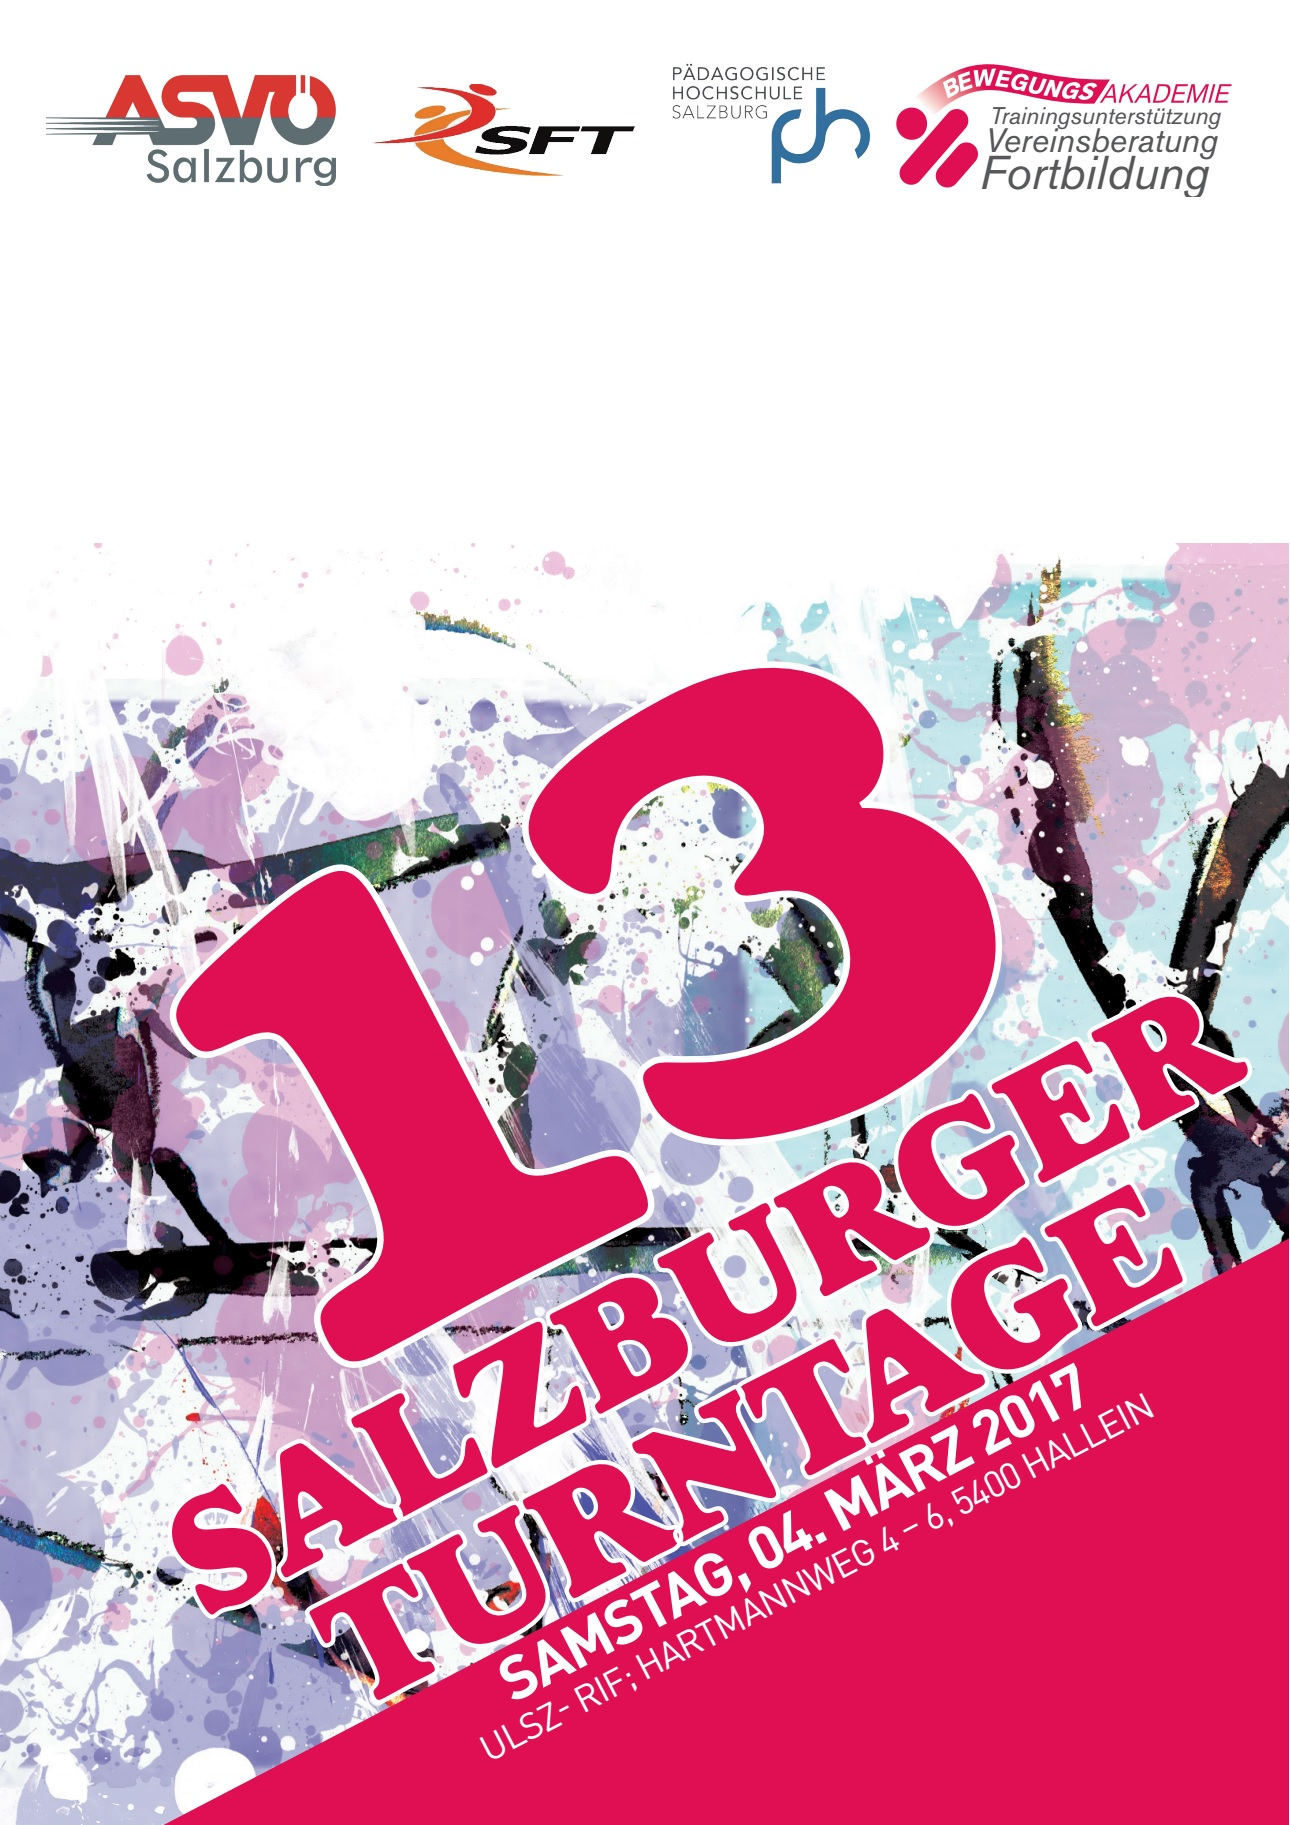 13-Sbg-Turntage-Cover1